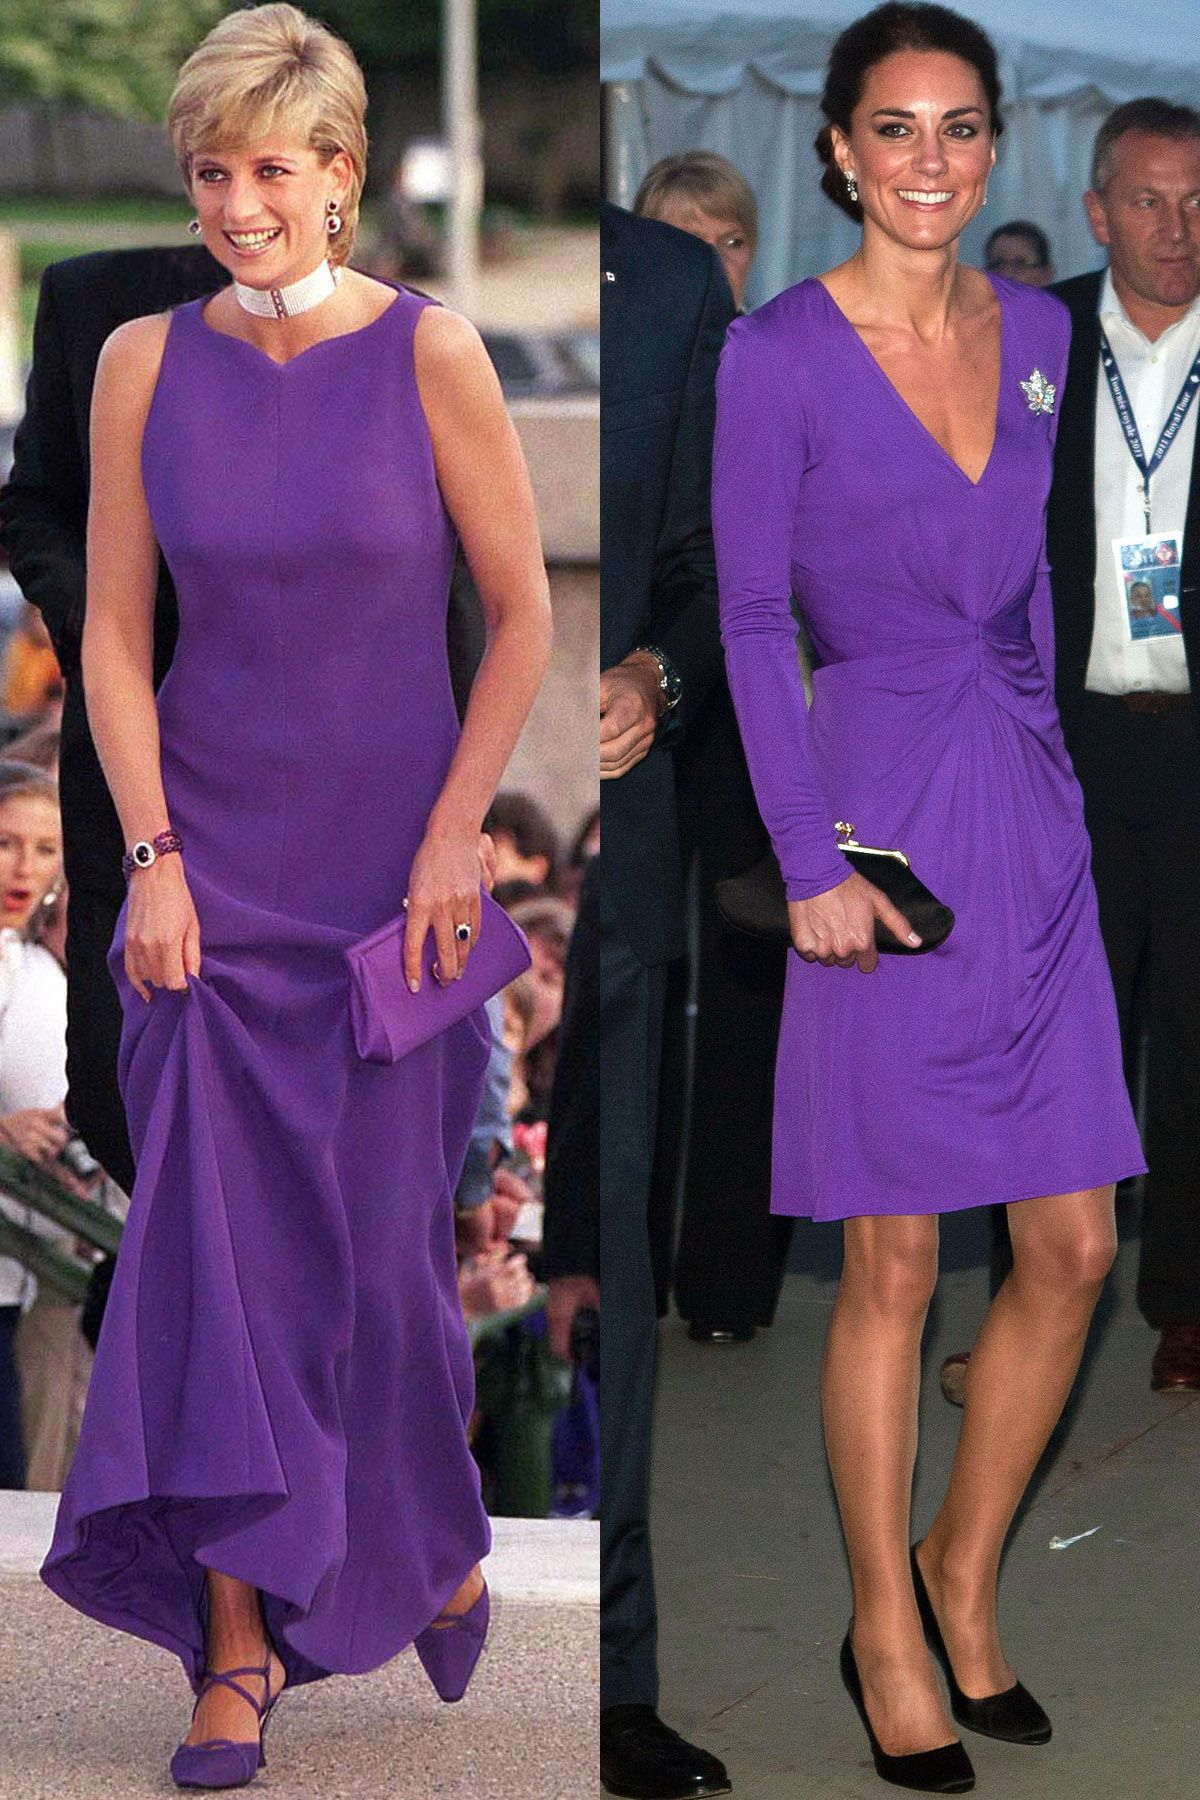 40+ Times Kate Middleton and Princess Diana Dressed Alike - Kate and Diana  Matching Clothes 69101f9d5